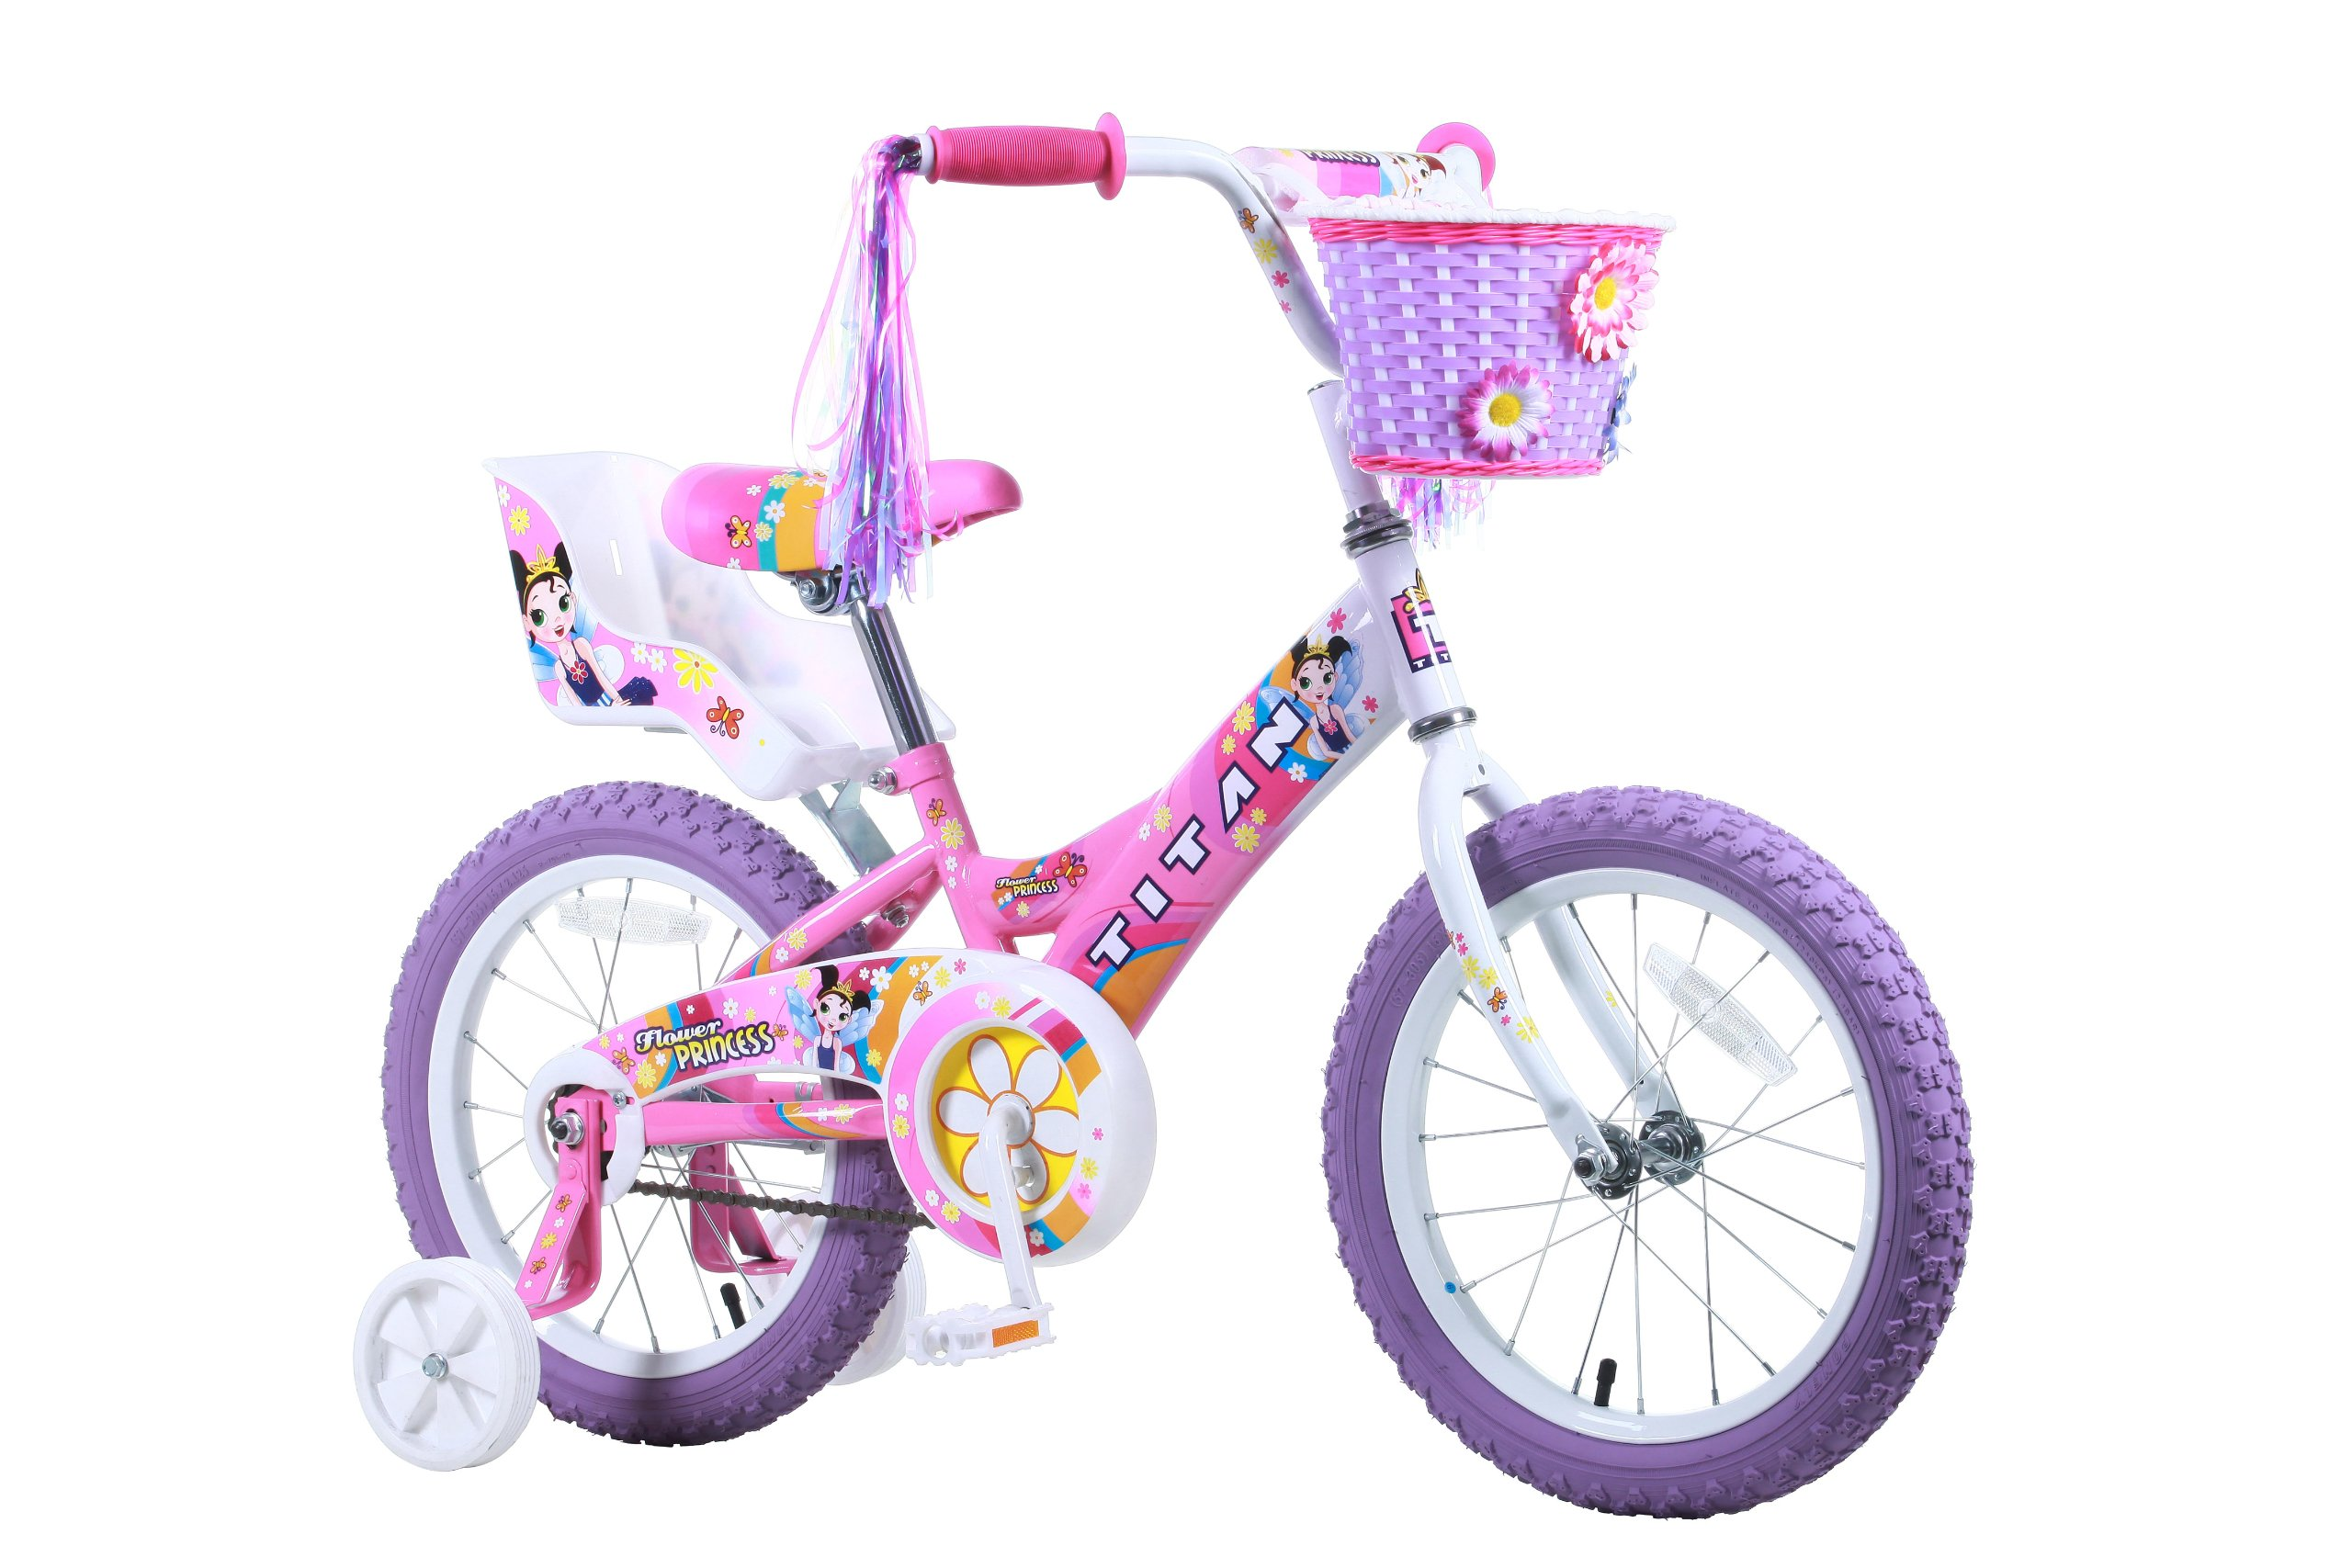 Titan Girl's Flower Princess BMX Bike, Pink, 16-Inch by Titan